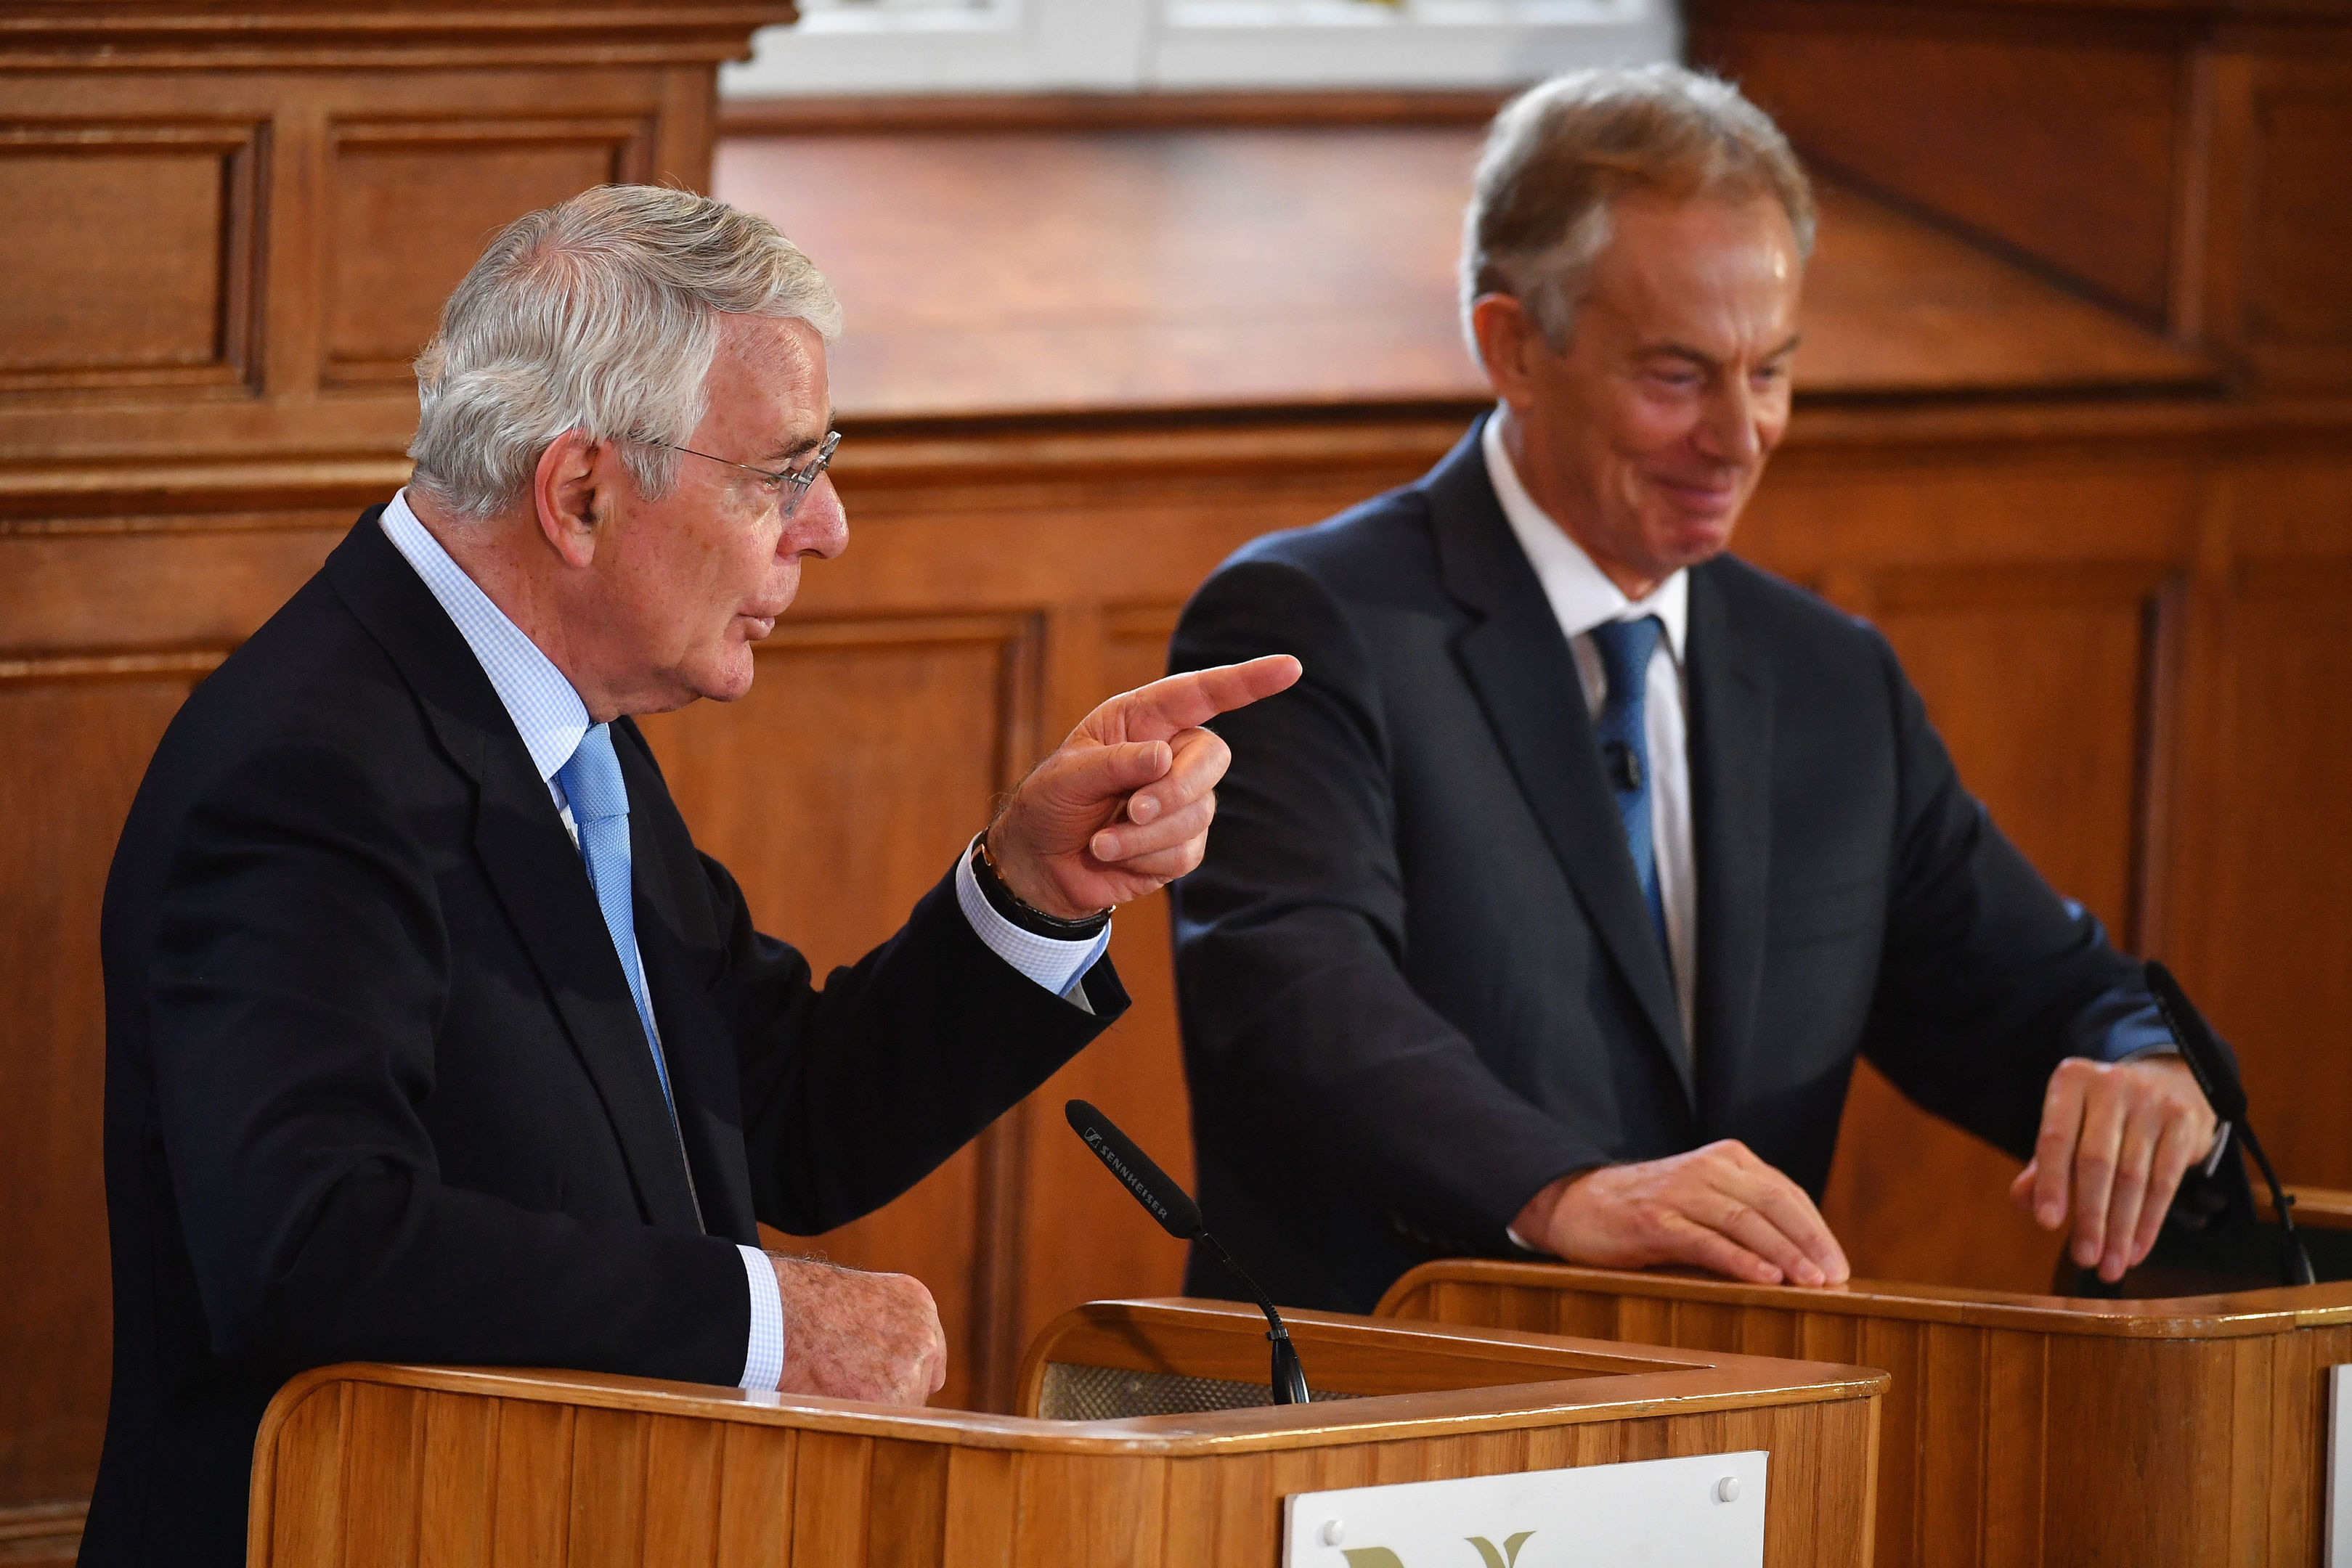 Former prime ministers Sir John Major and Tony Blair share a platform for the Remain campaign event at the University of Ulster.